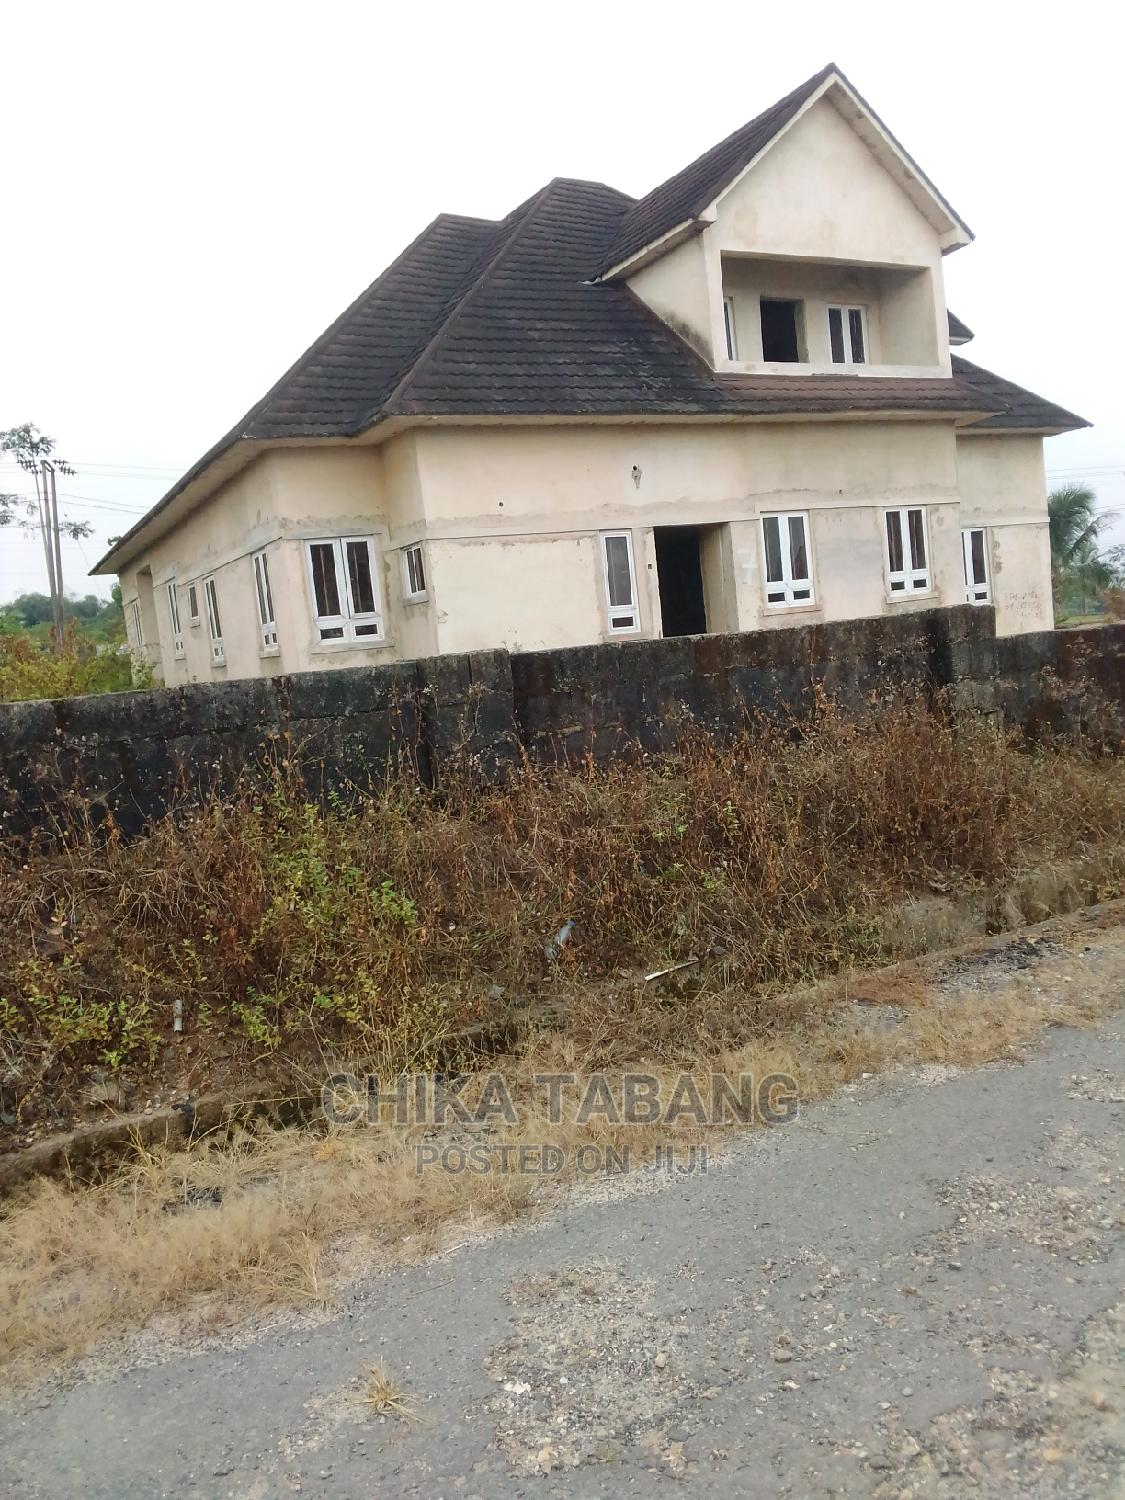 7 Bedroom Duplex in a Very Secure,Choice Area.